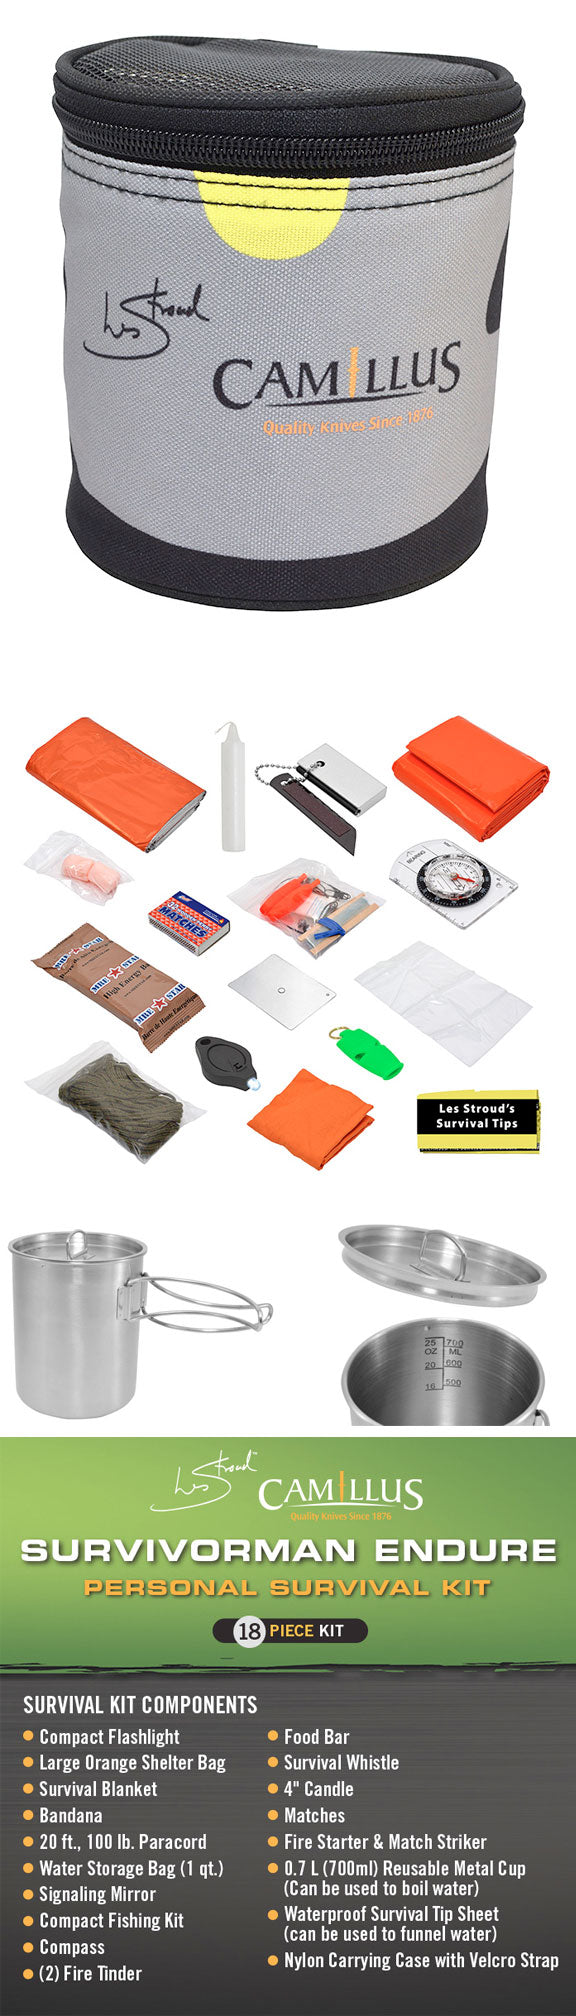 Les Stroud Survival Kits - Camillus Survivorman Endure - Personal Survival Kit